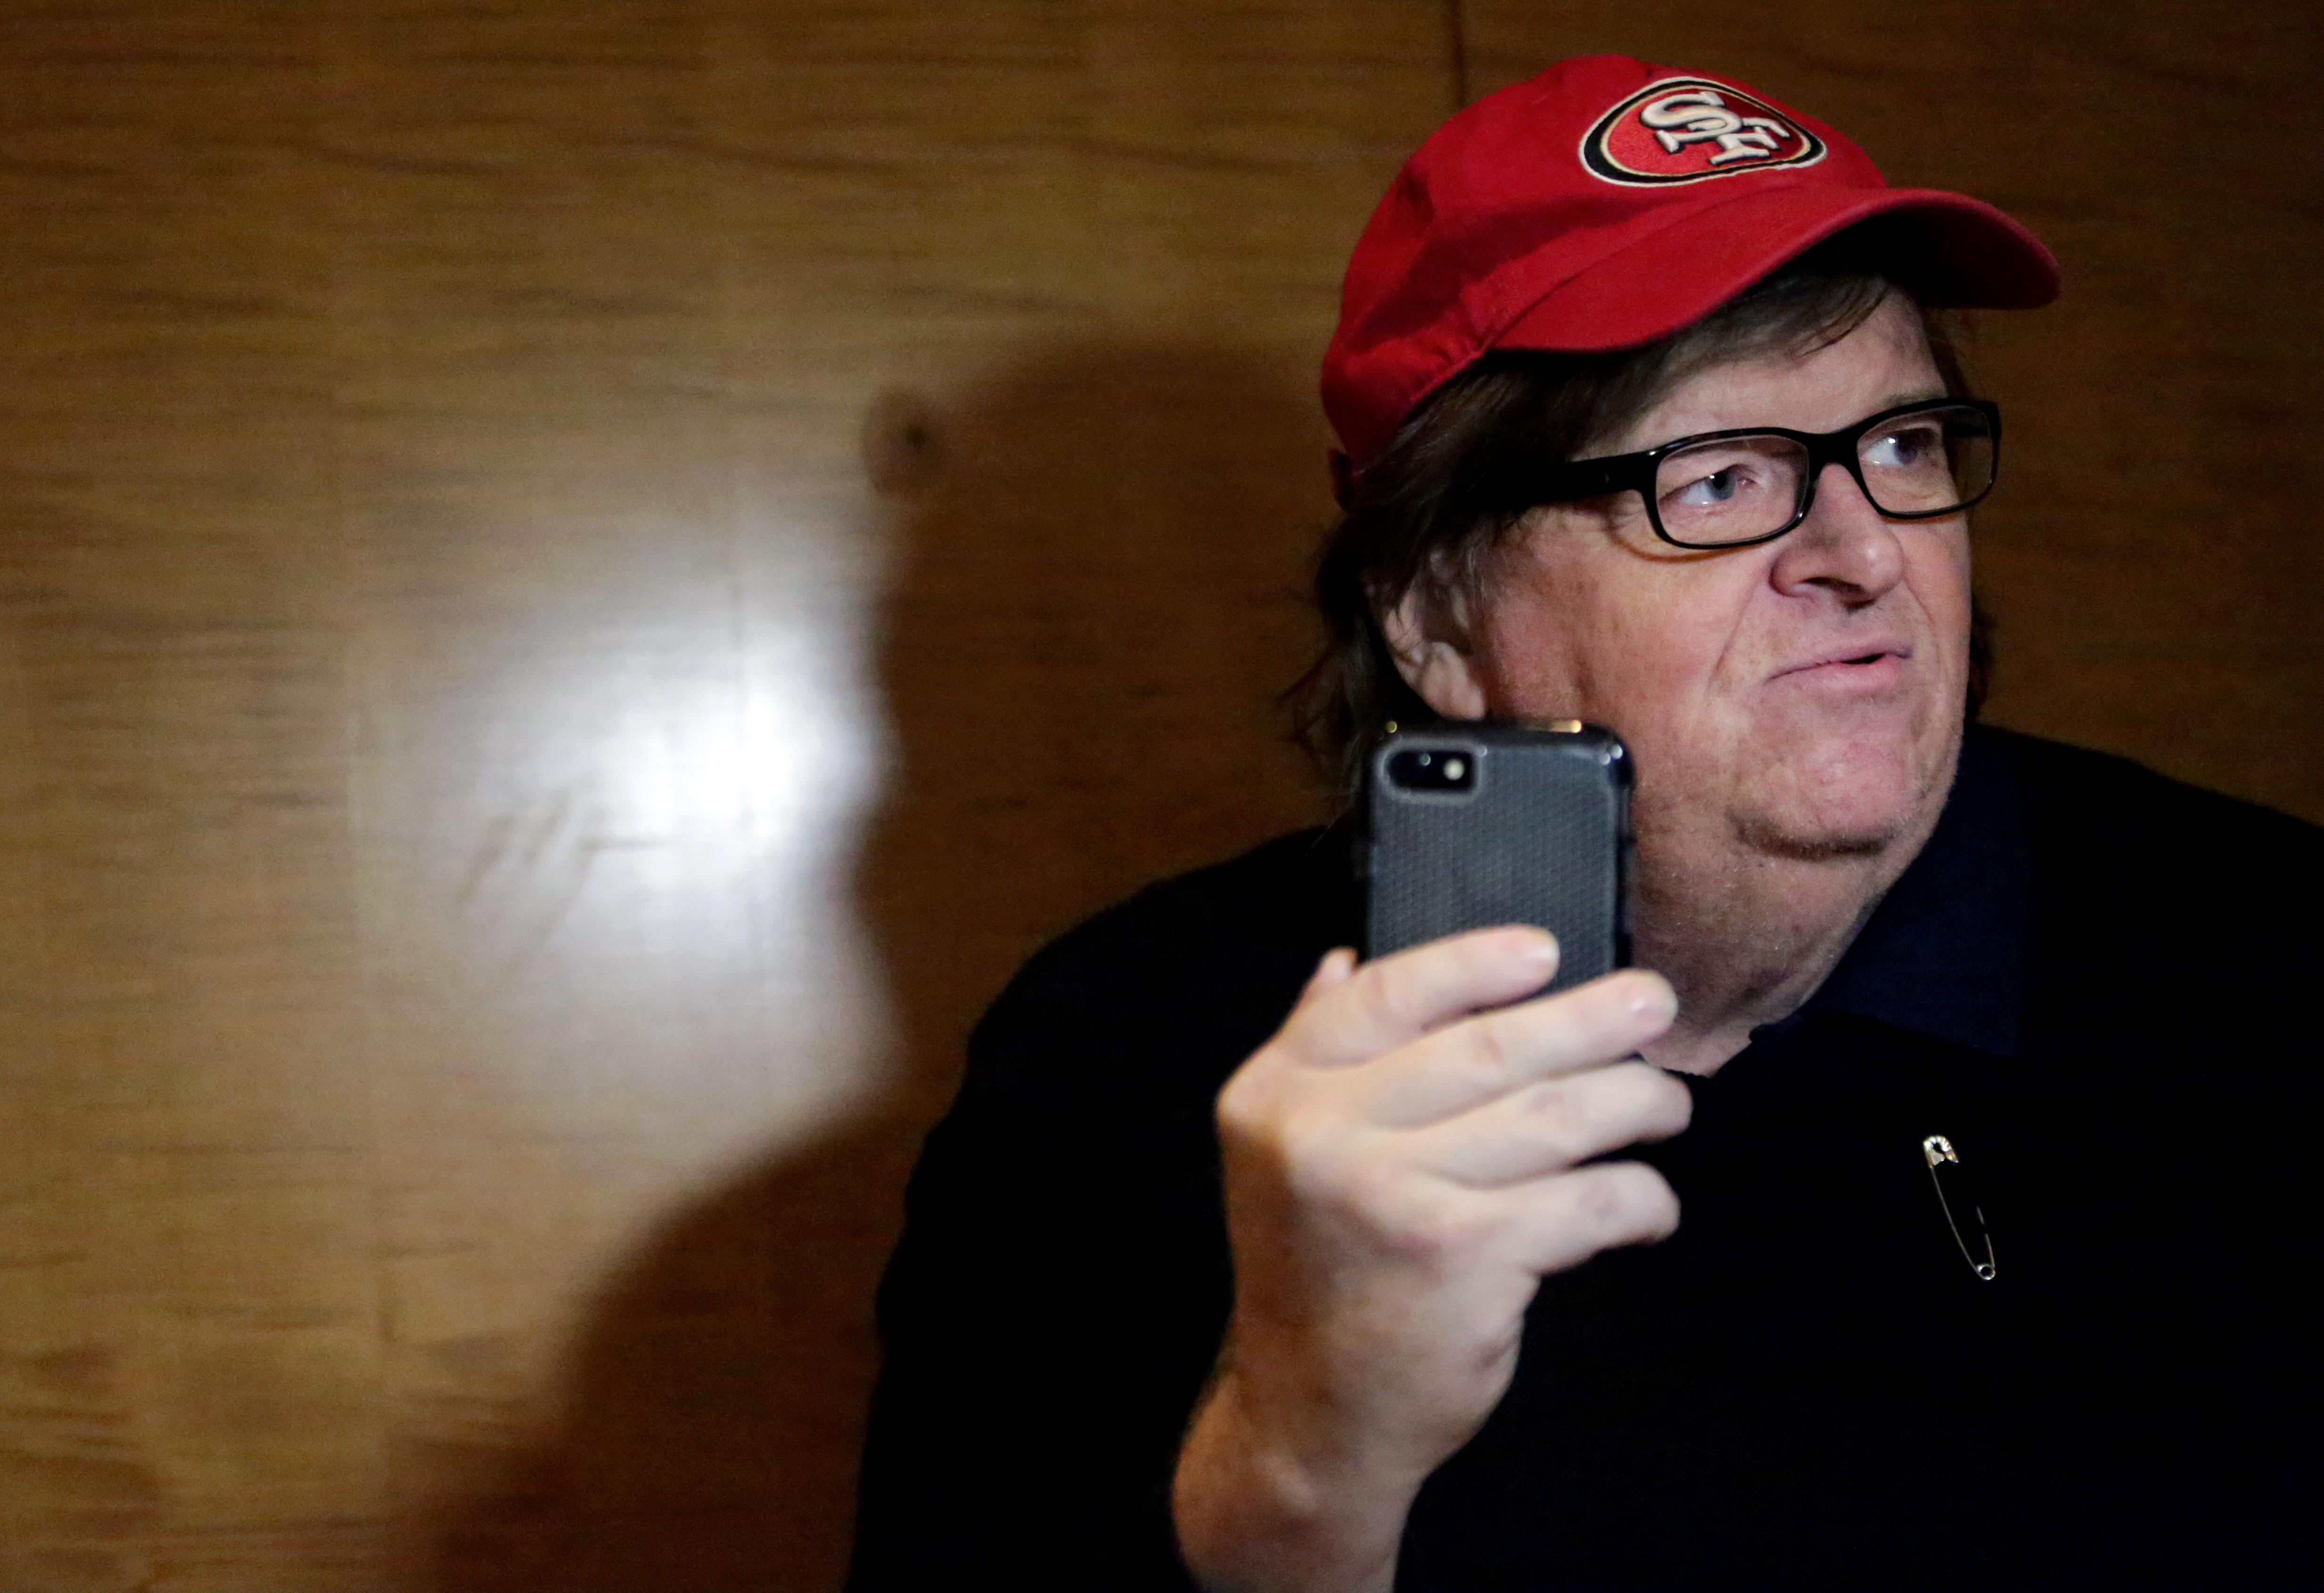 Filmmaker Michael Moore films himself with a smartphone at Trump Tower on November 12, 2016 in New York City.